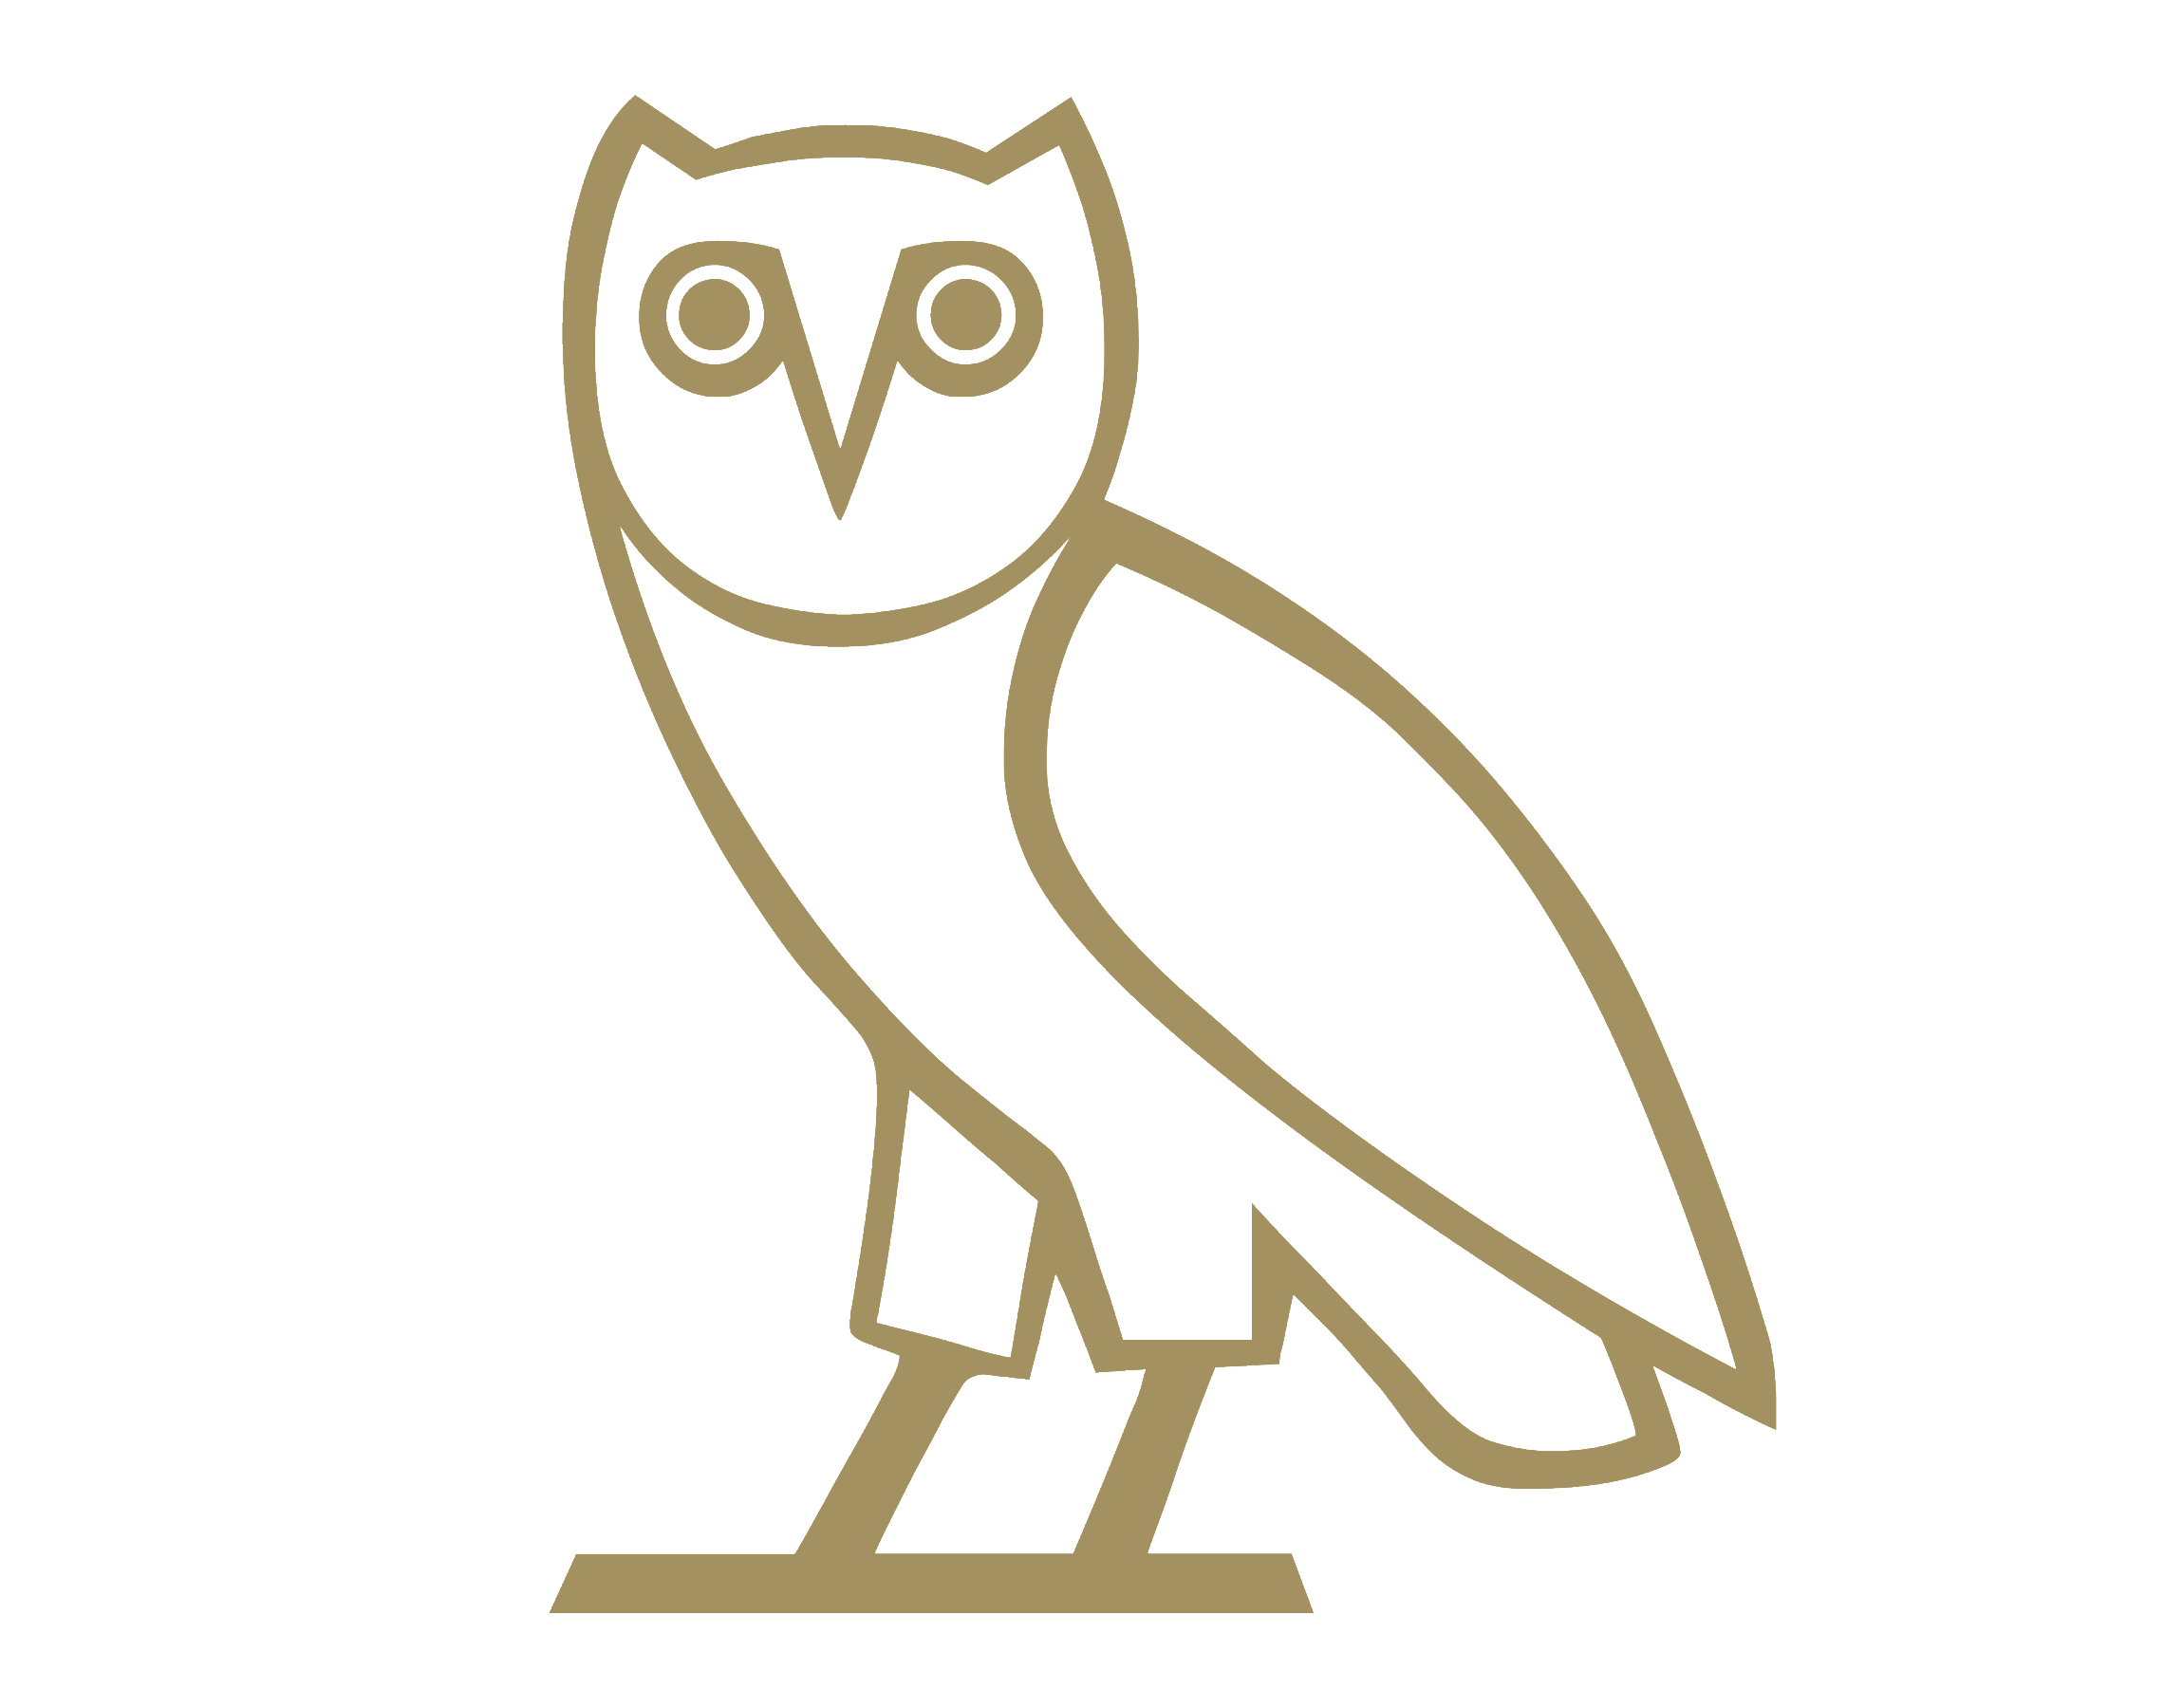 Drake logo png. Ovo symbol meaning history